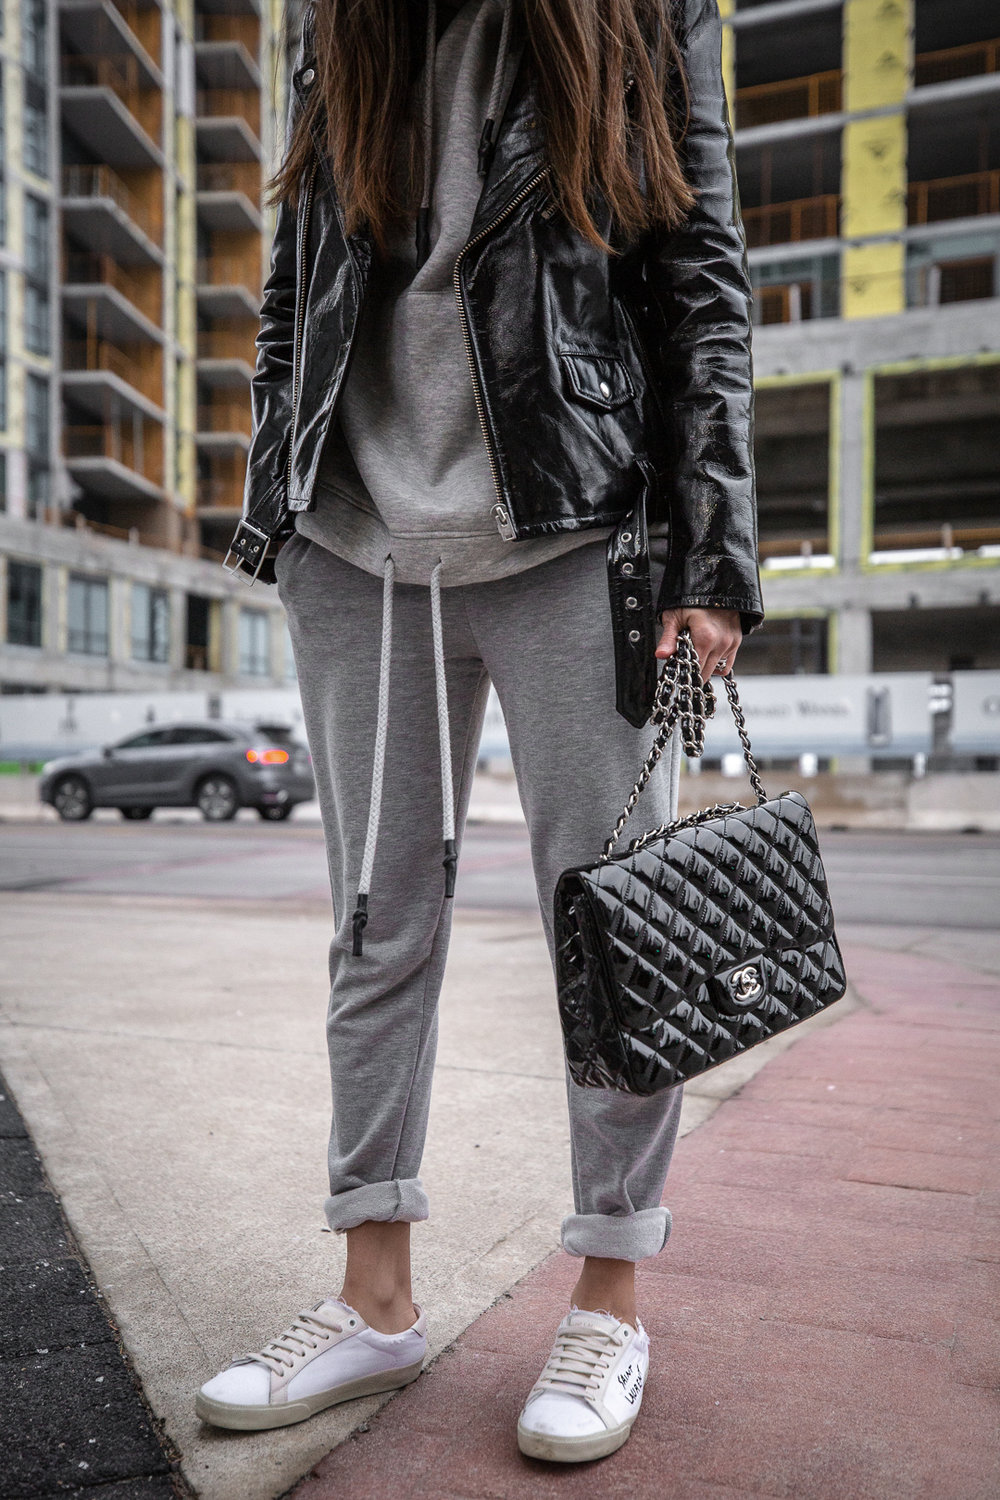 Nathalie Martin - IRO Paris patent leather moto jacket, Zara sweatsuit, grey hoodie and sweatpants, Saint Laurent white canvas logo sneakers, CHANEL patent leather jumbo flap quilted bag, ACNE studios Pansy face beanie hat - woahstyle.com_5592.jpg